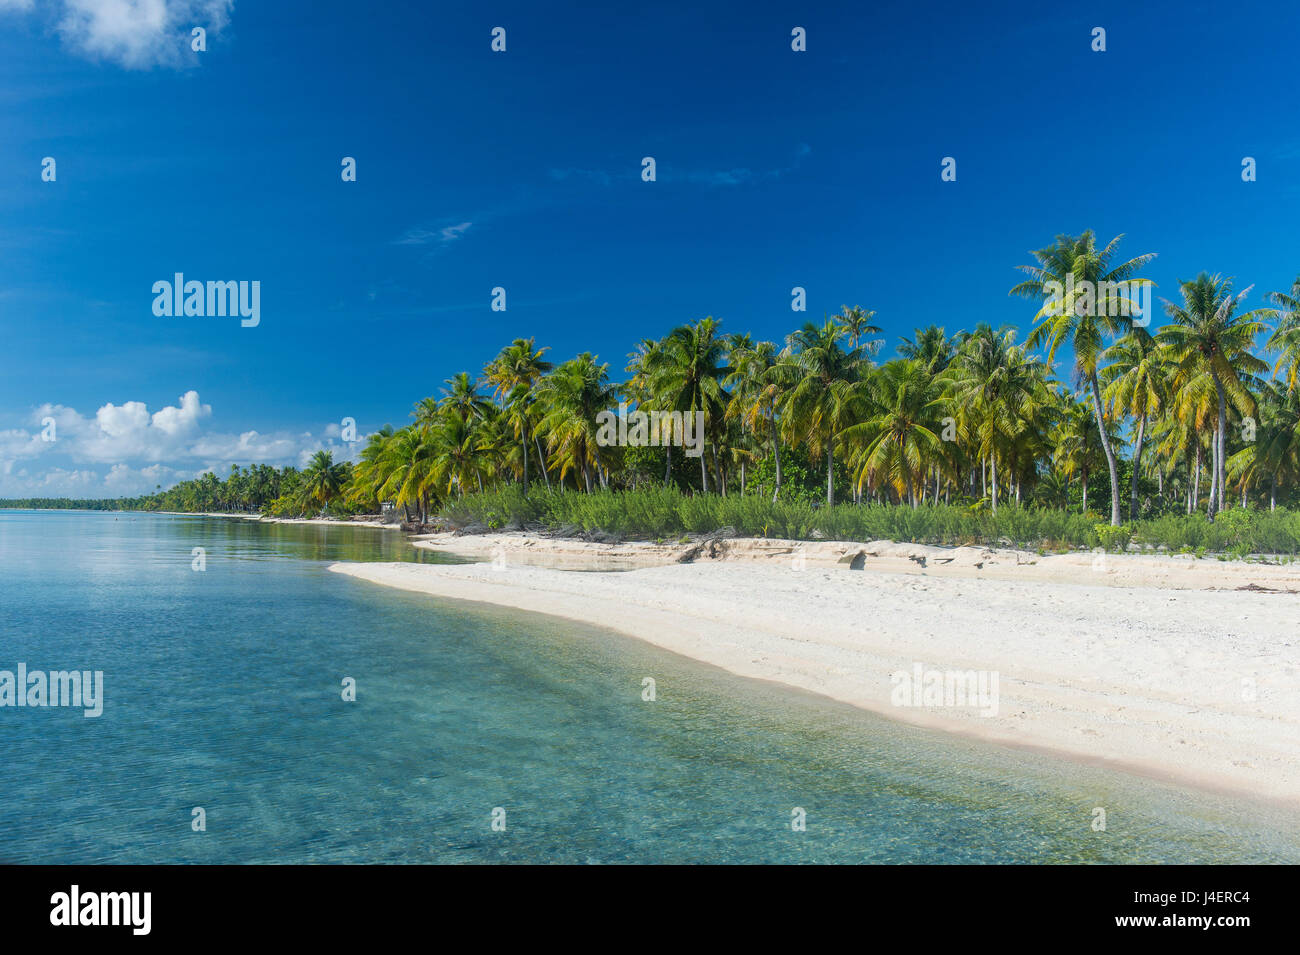 Beautiful palm fringed white sand beach in the turquoise waters of Tikehau, Tuamotus, French Polynesia, Pacific Stock Photo